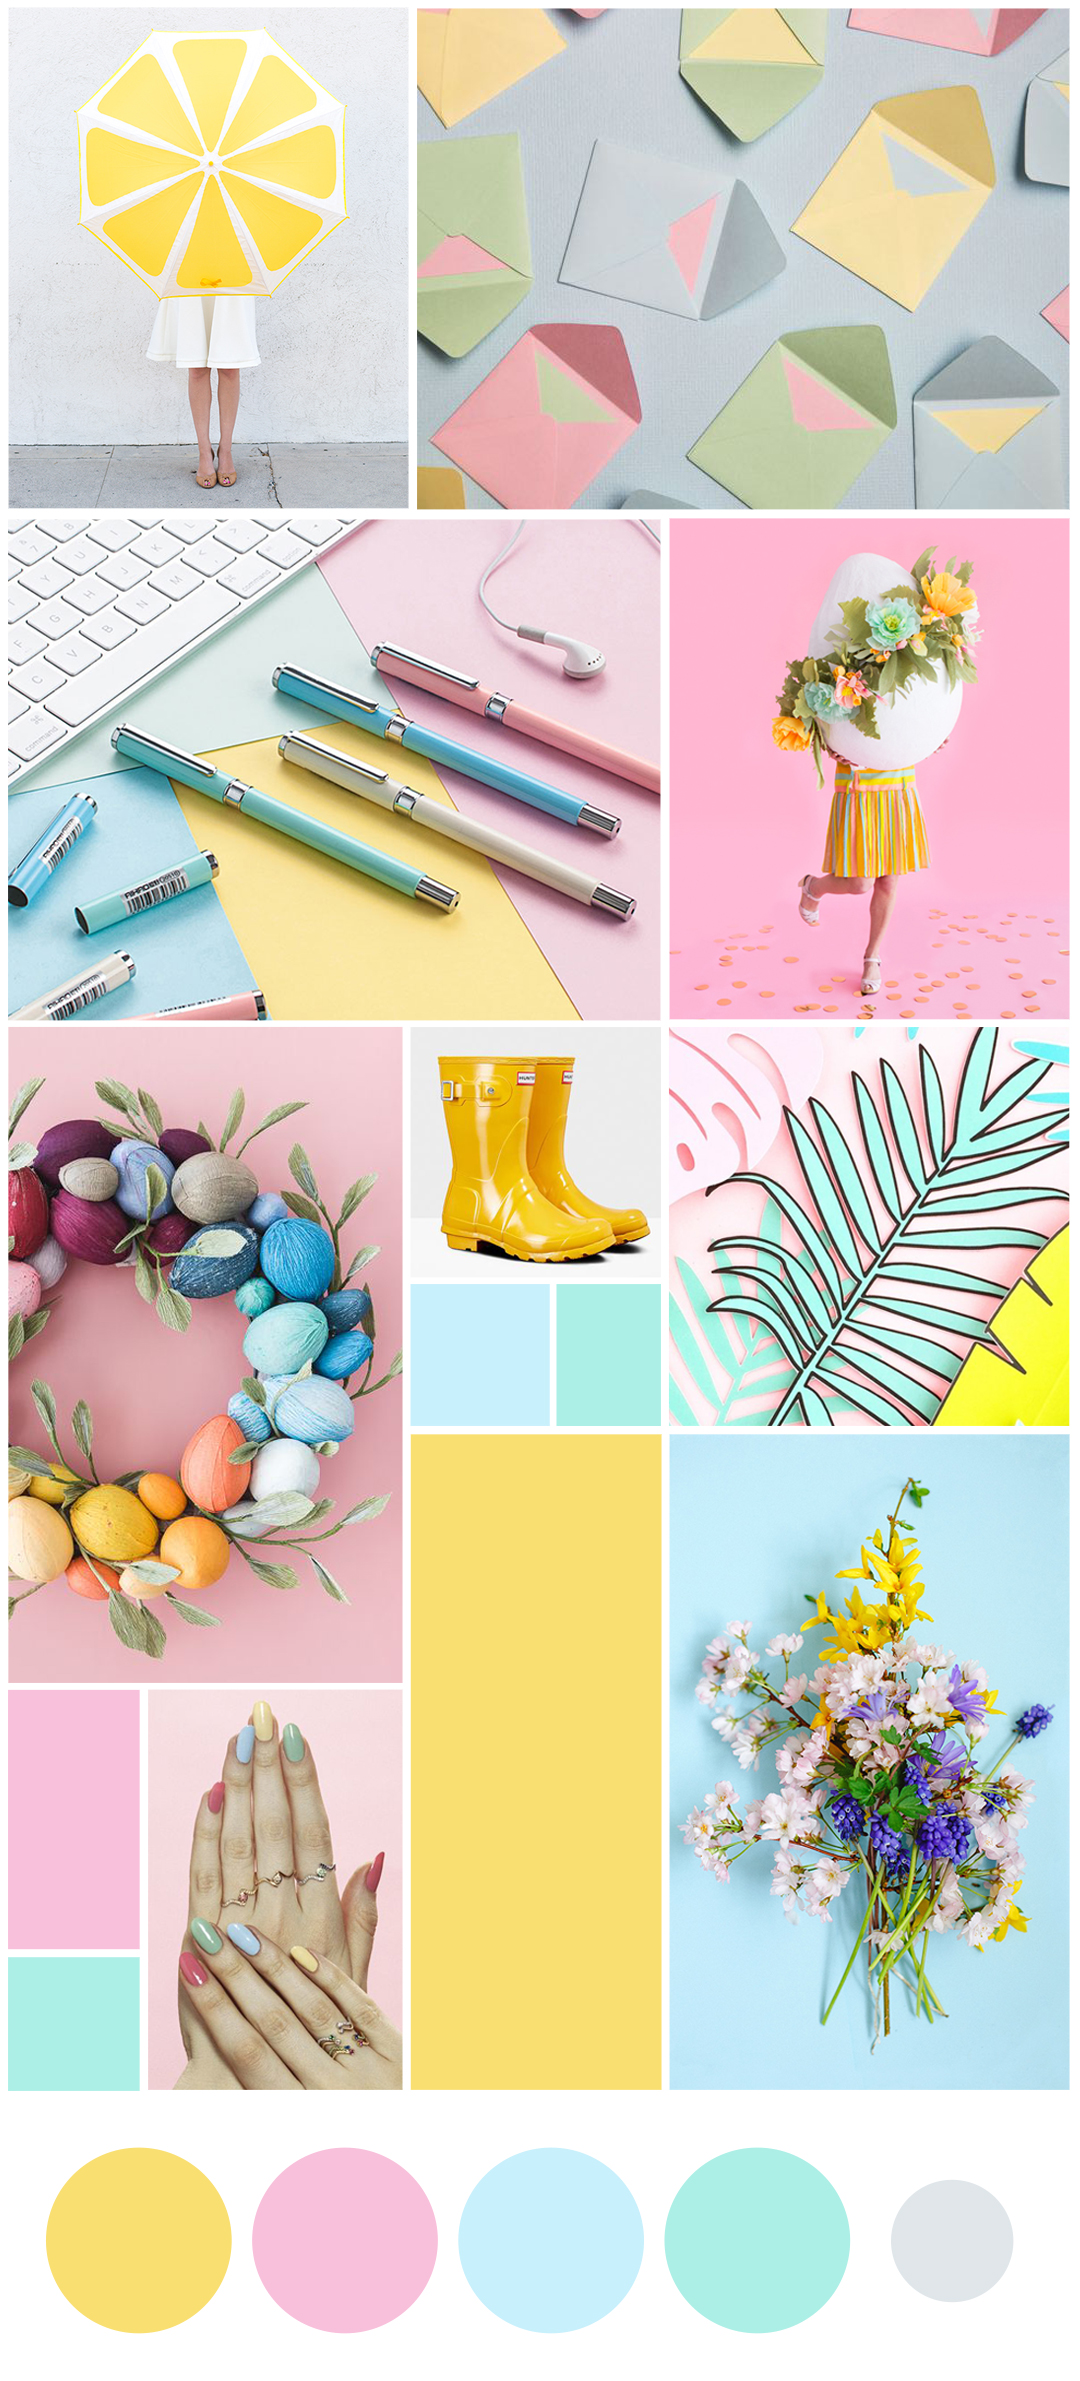 Prop Ideas to Update Your Spring Photography | The Content Designer Blog